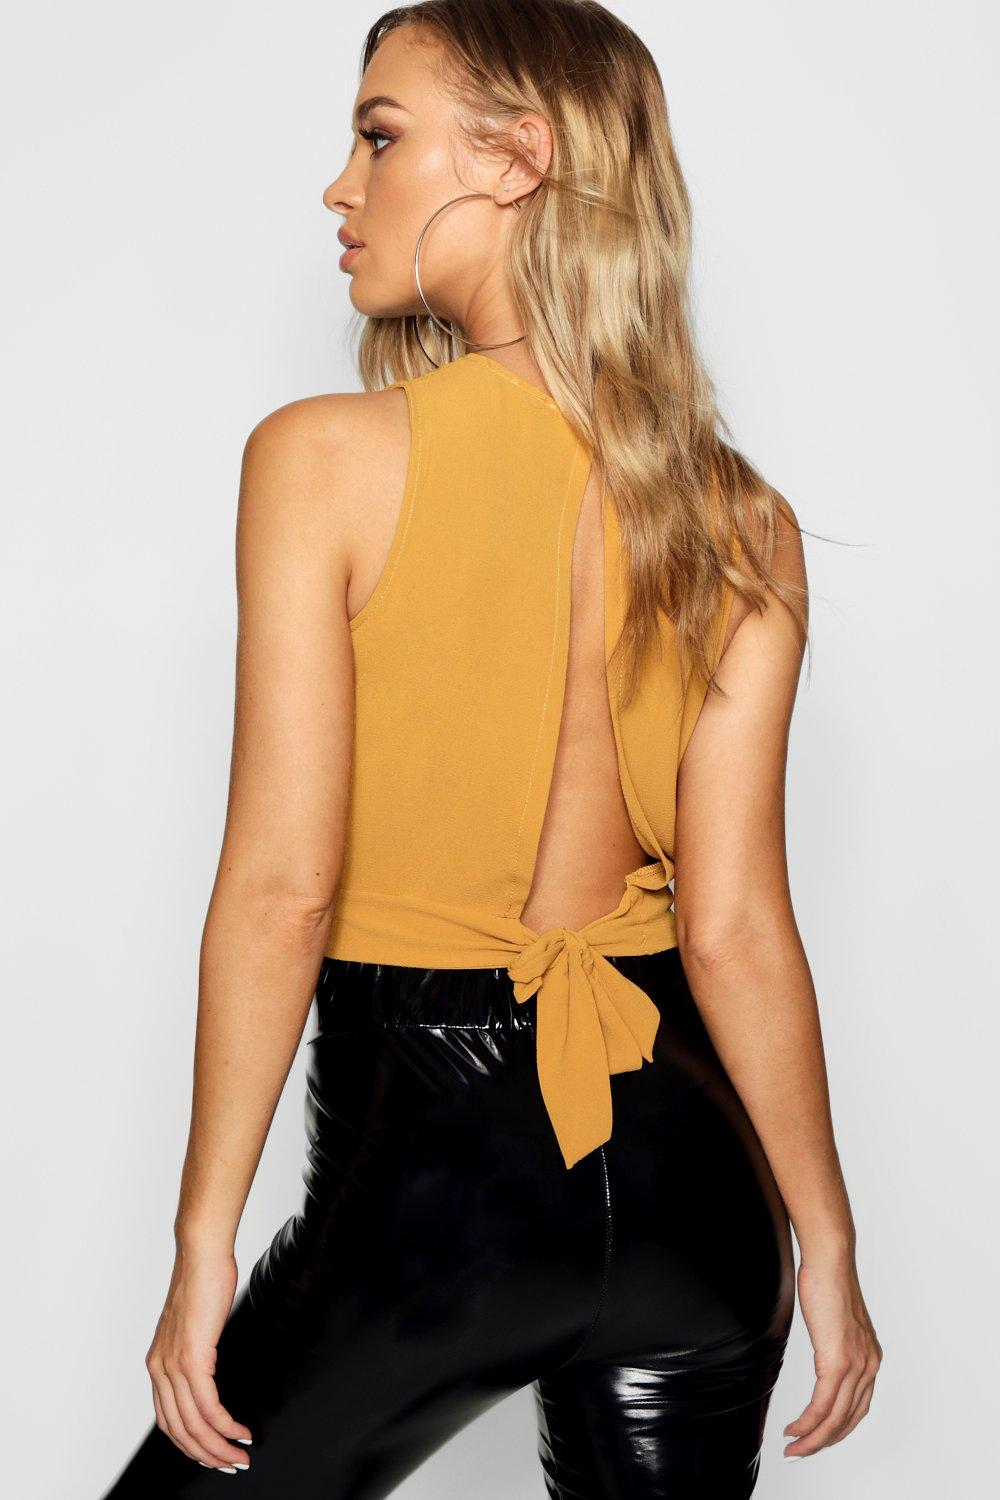 Crop Top mustard Woven Back Tie qwE6g1PZBx